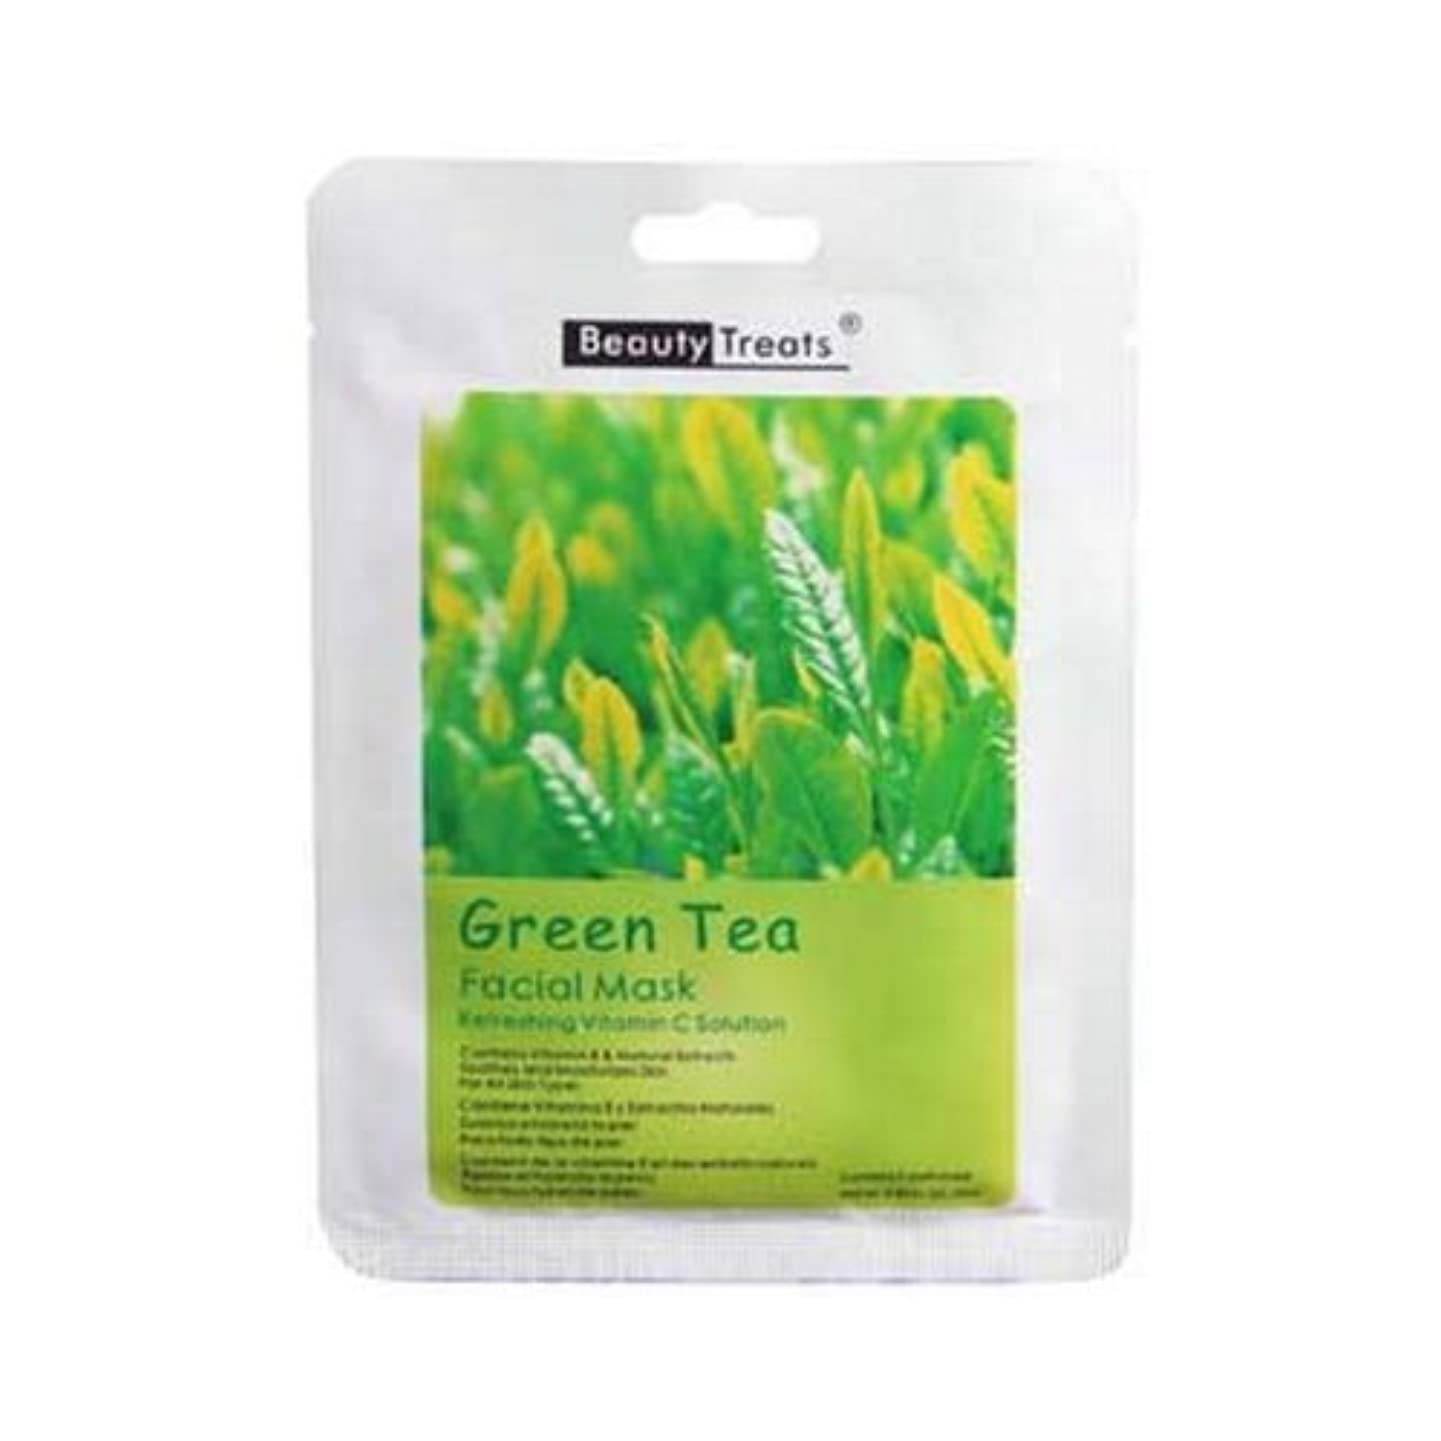 陪審パレードひまわり(3 Pack) BEAUTY TREATS Facial Mask Refreshing Vitamin C Solution - Green Tea (並行輸入品)